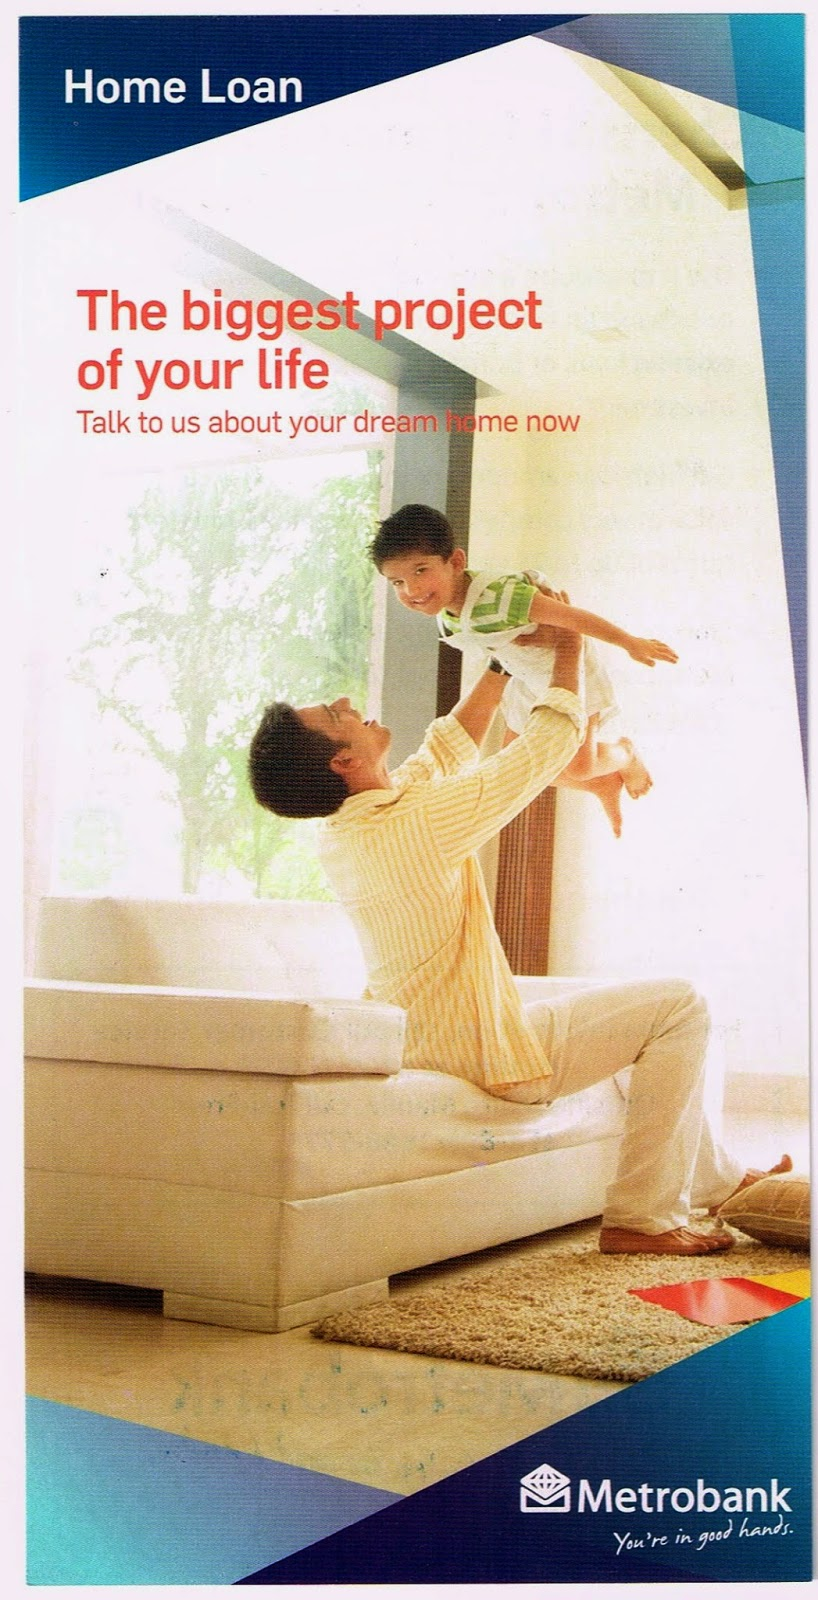 Metrobank: Home Loan the Biggest Project of Your Life